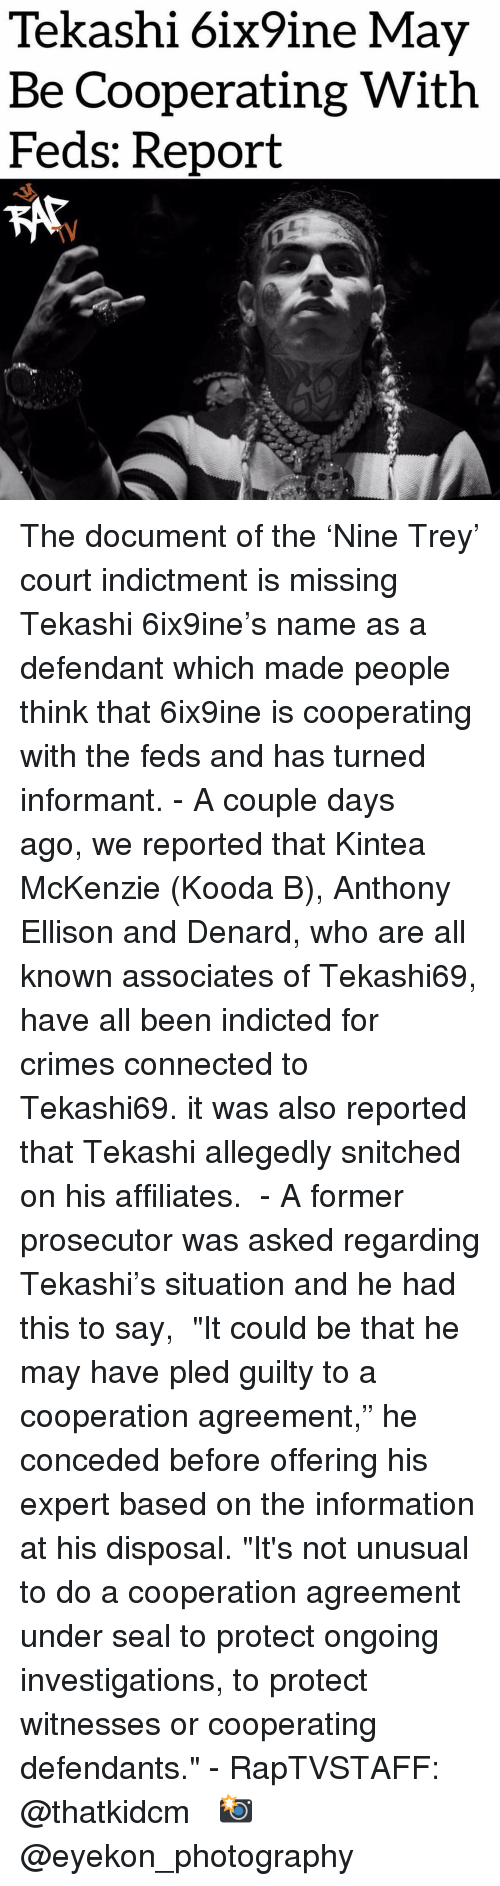 """Memes, Connected, and Information: Tekashi 6ix9ine May  Be Cooperating With  Feds: Report  TV The document of the 'Nine Trey' court indictment is missing Tekashi 6ix9ine's name as a defendant which made people think that 6ix9ine is cooperating with the feds and has turned informant. - A couple days ago, we reported that Kintea McKenzie (Kooda B), Anthony Ellison and Denard, who are all known associates of Tekashi69, have all been indicted for crimes connected to Tekashi69. it was also reported that Tekashi allegedly snitched on his affiliates.  - A former prosecutor was asked regarding Tekashi's situation and he had this to say,  """"It could be that he may have pled guilty to a cooperation agreement,"""" he conceded before offering his expert based on the information at his disposal. """"It's not unusual to do a cooperation agreement under seal to protect ongoing investigations, to protect witnesses or cooperating defendants."""" - RapTVSTAFF: @thatkidcm  📸 @eyekon_photography"""